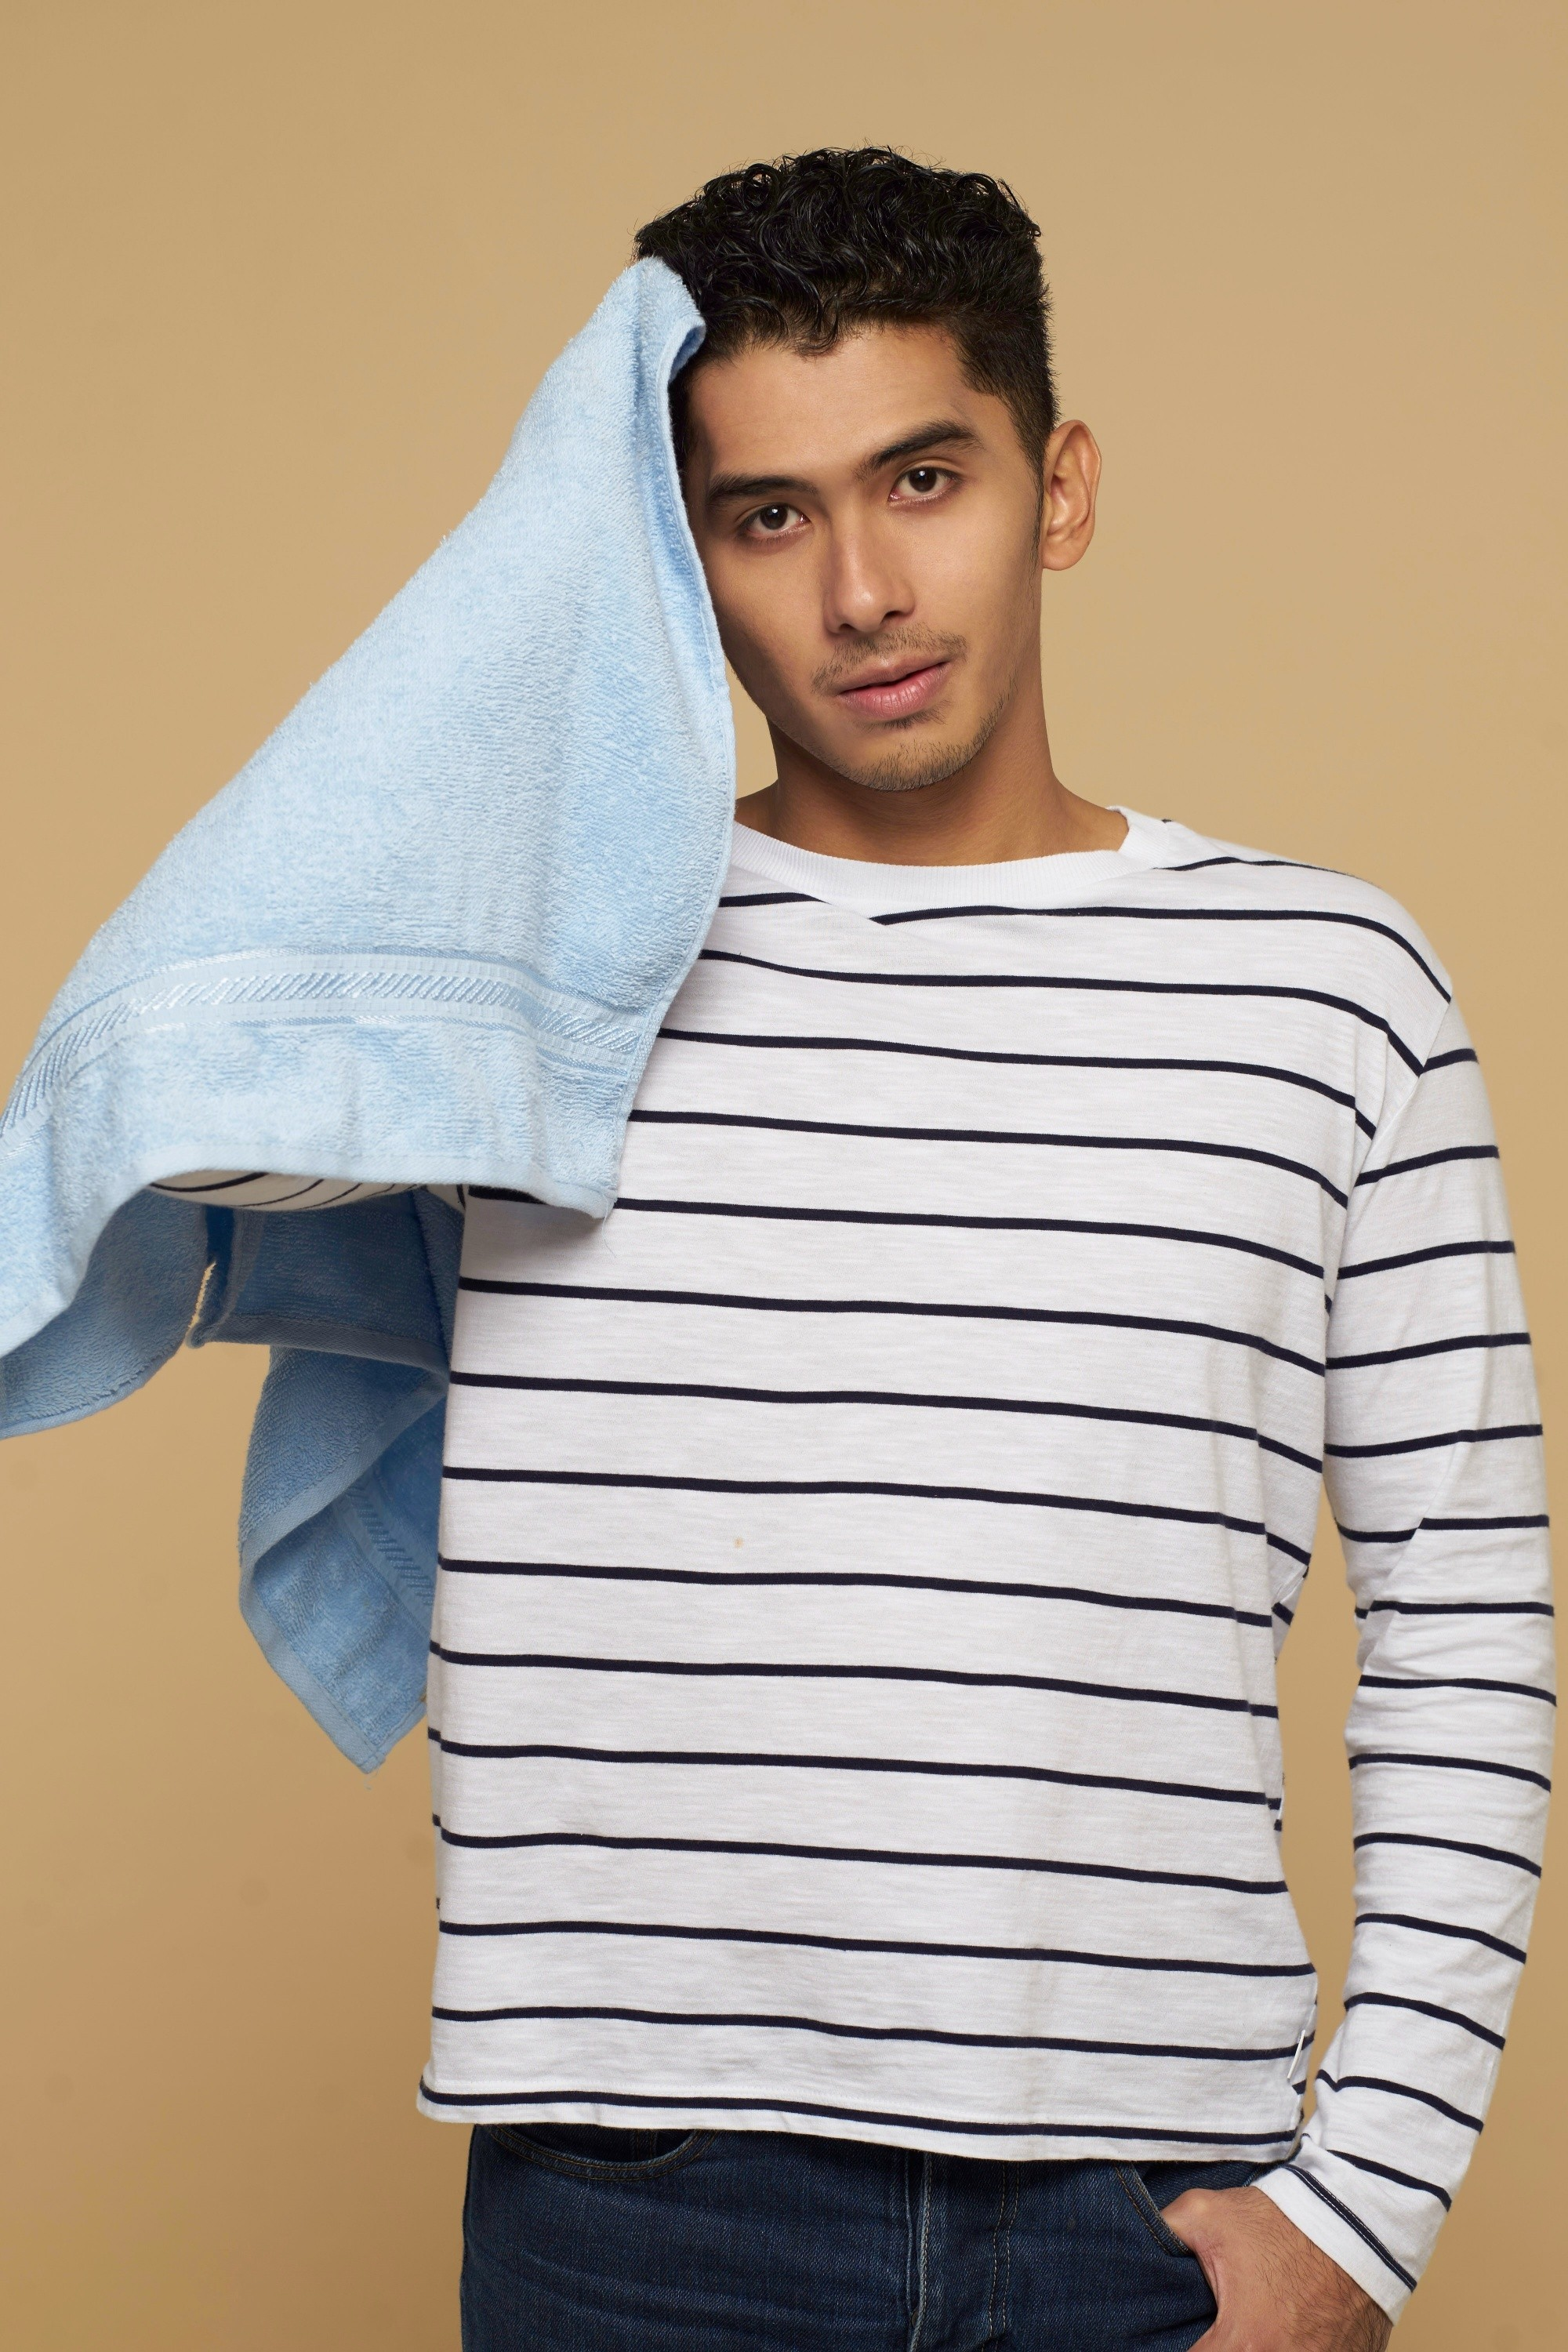 Asian man holding a blue towel and patting his short black hair dry